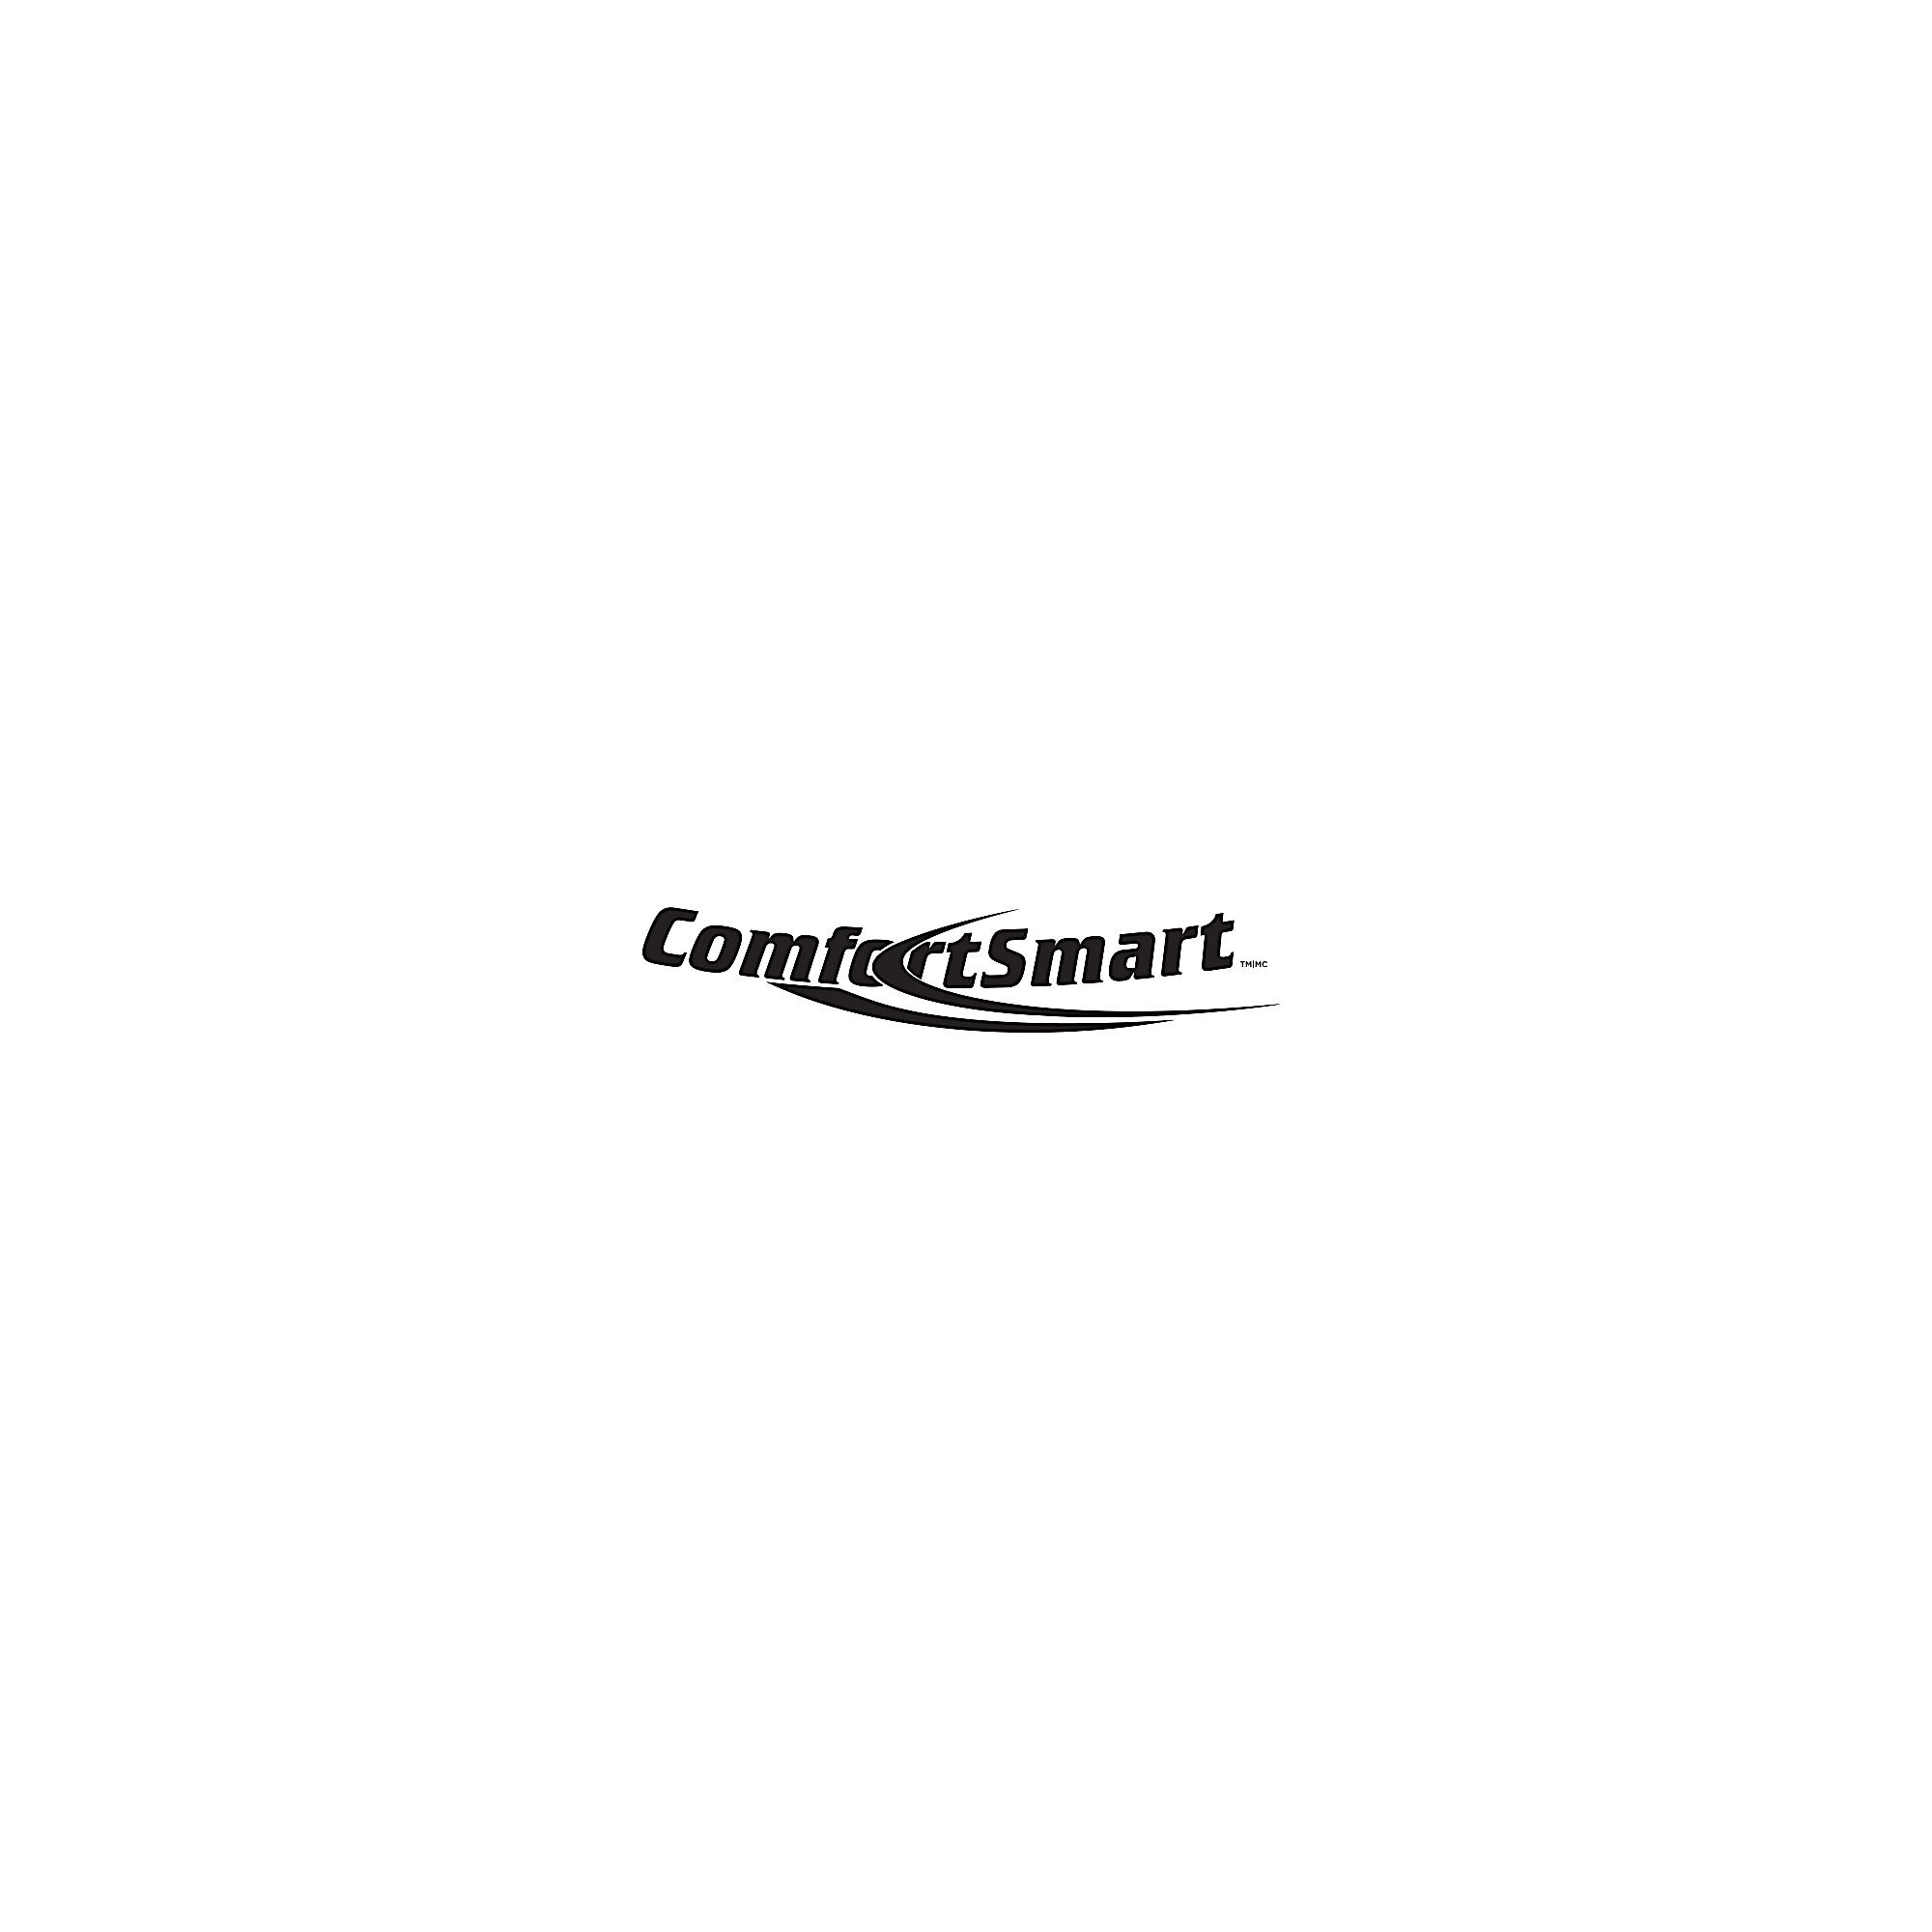 Comfortsmart™ Technology